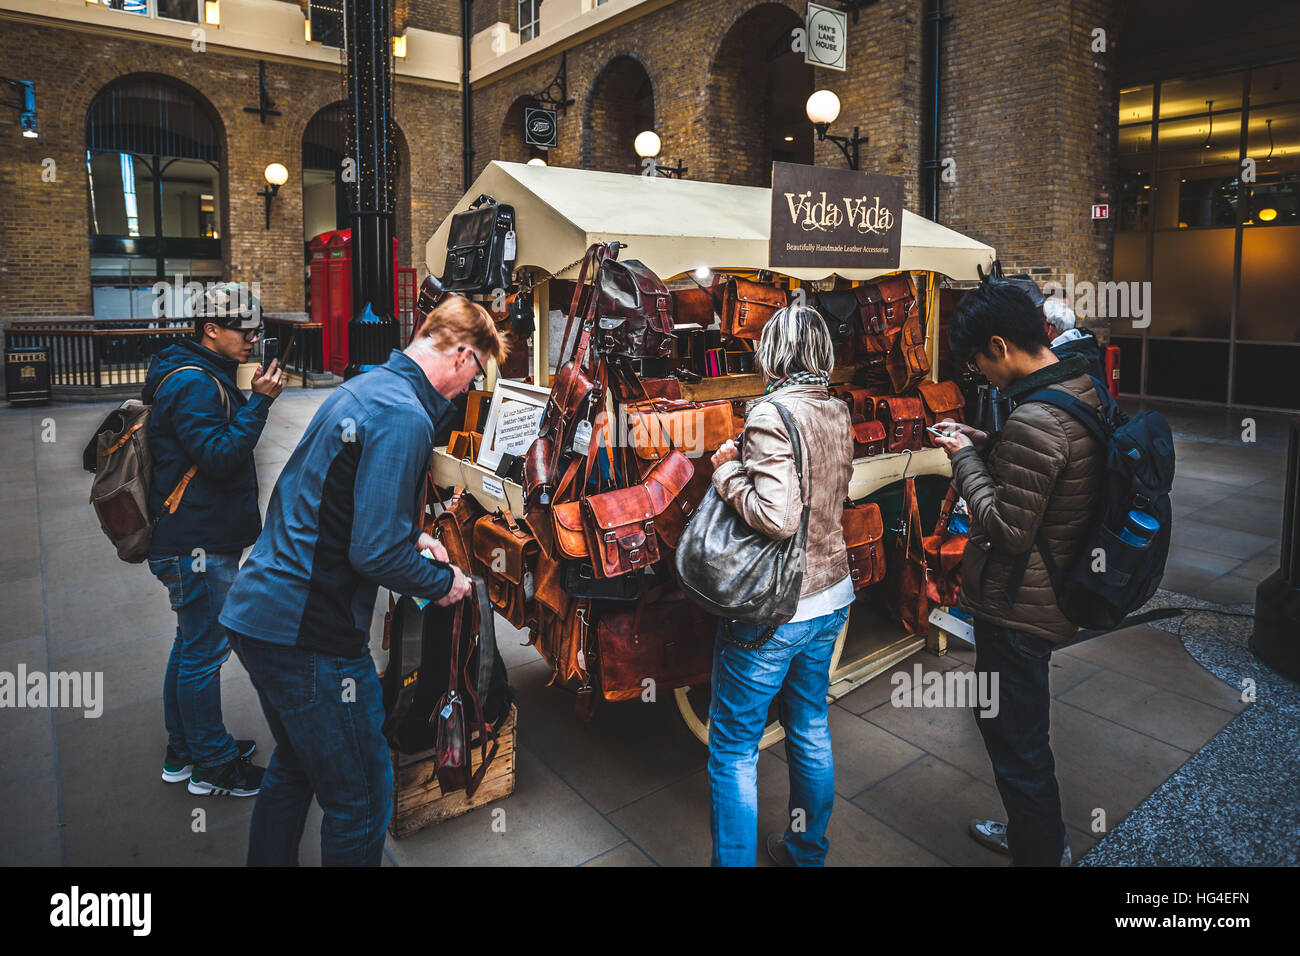 People around a stall with handmade purses and leather handbags and accessories in London - Stock Image